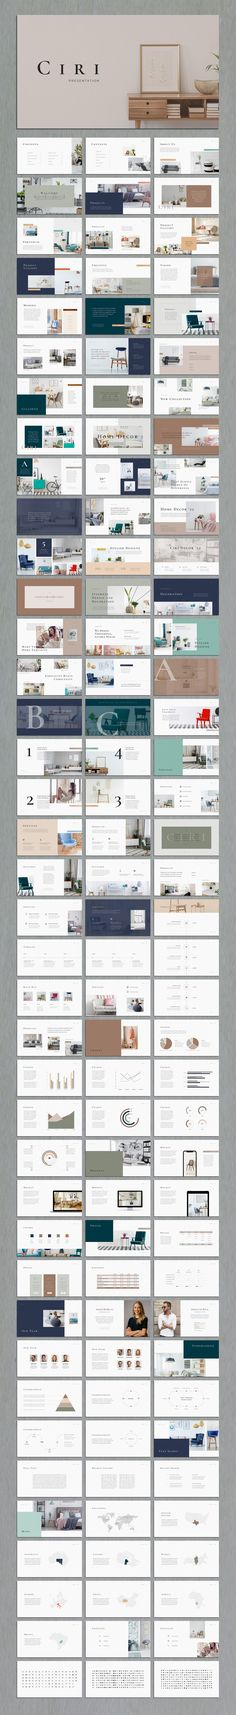 Ciri is an elegant, sleek, easy-to use template made for PowerPoint. Its multipurpose design allows you to use it for any field including interior design, home decoration, photography, portfolio, business, fashion, proposal presentations. #powerpoint #presentation #template #interiors